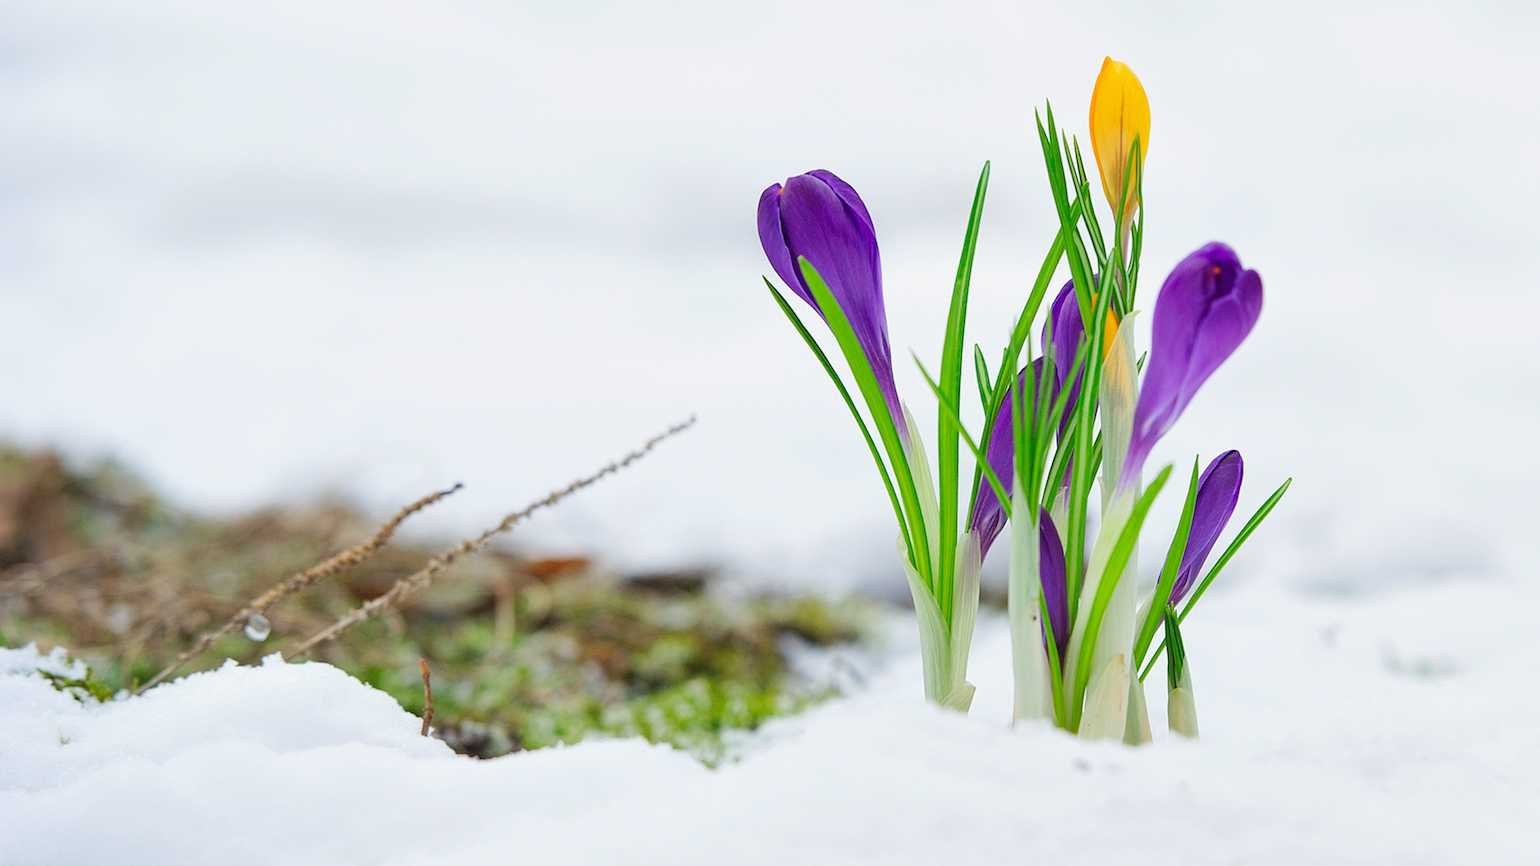 Yearning for spring